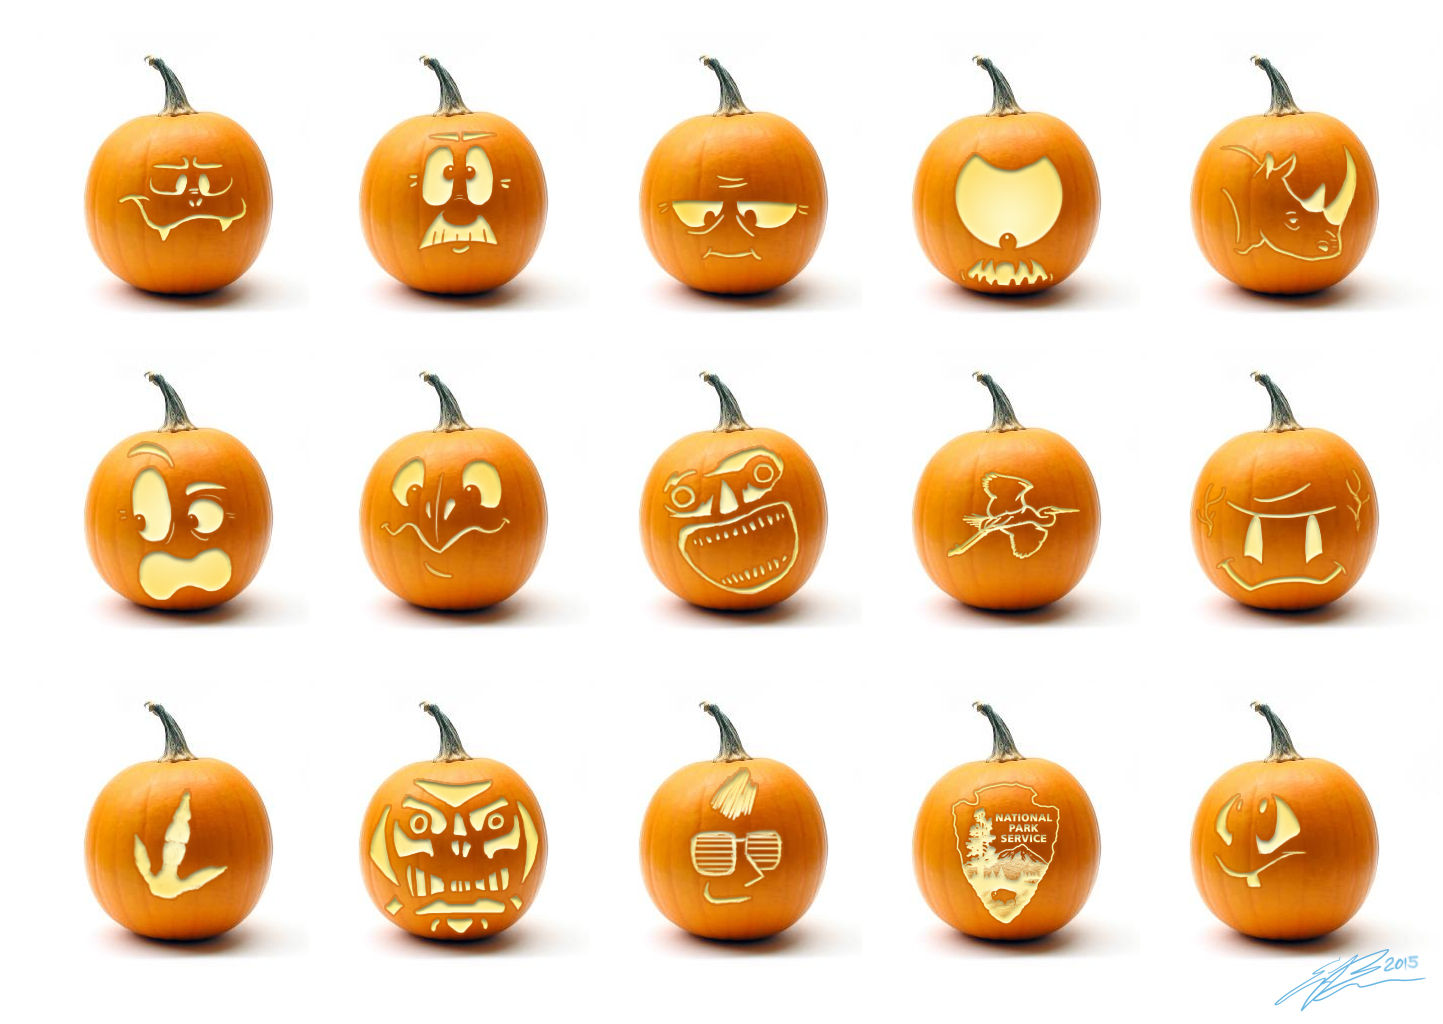 this also marks the fifth anniversary of doing this thats kind of exciting right anyhoo here are this years designs click to enlarge - Pumpkin Designs